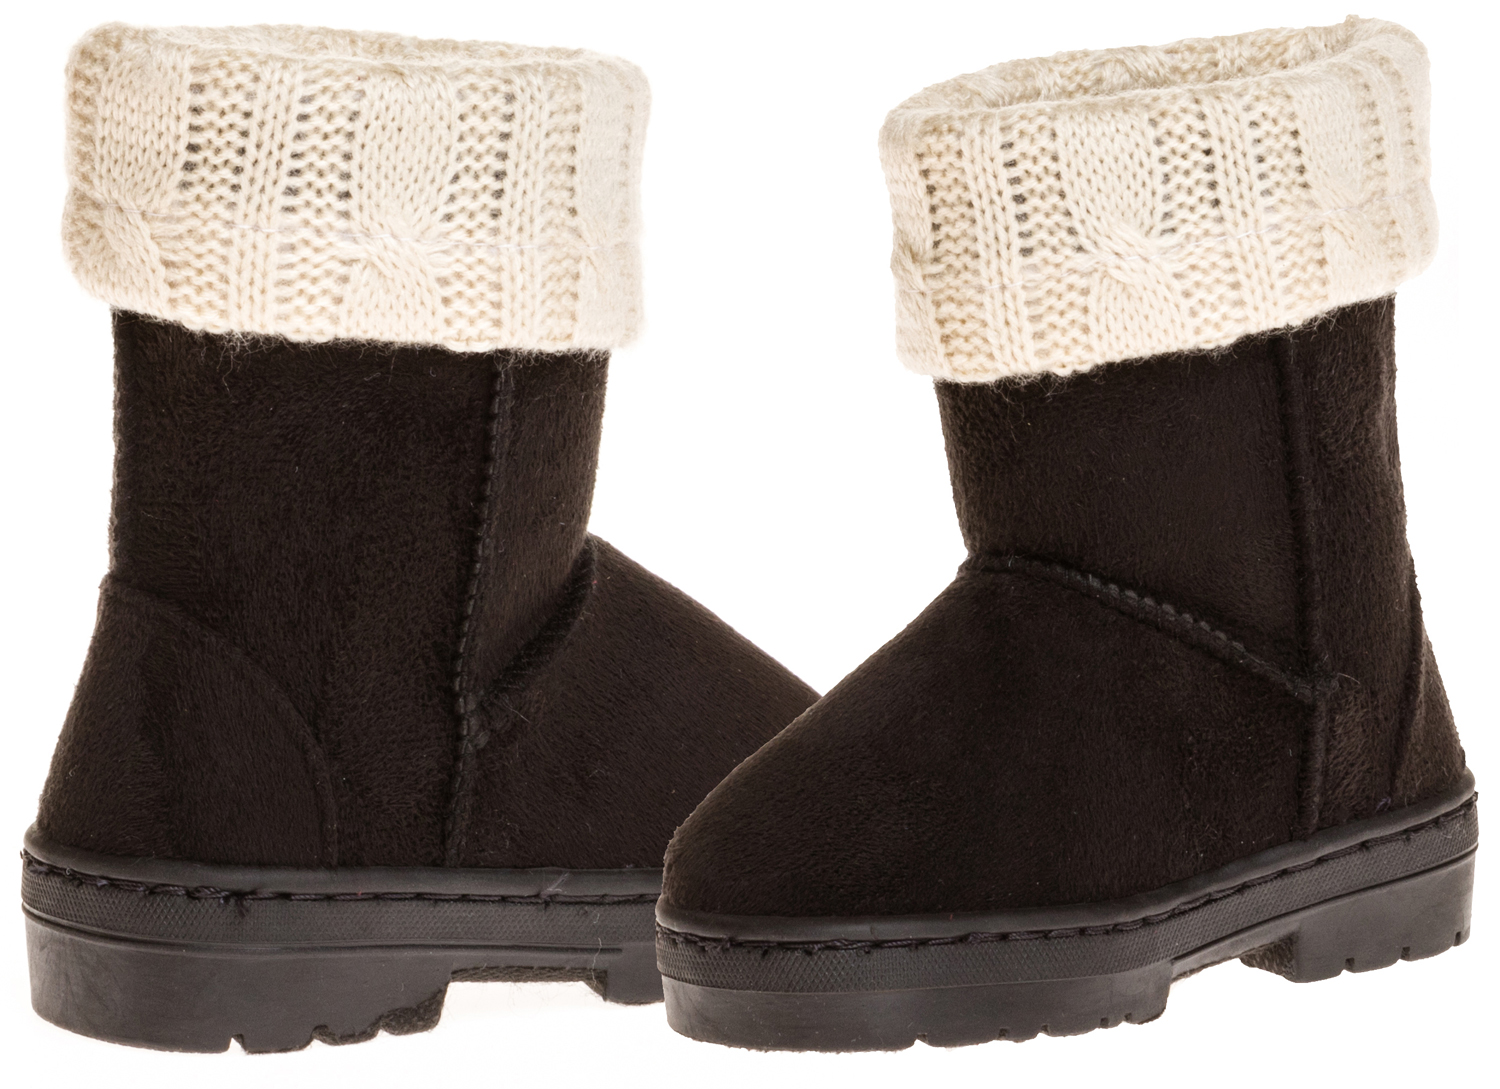 Sara Z Toddler Girls Lug Sole Winter Boot With Fold-Over Sweater Cuff by